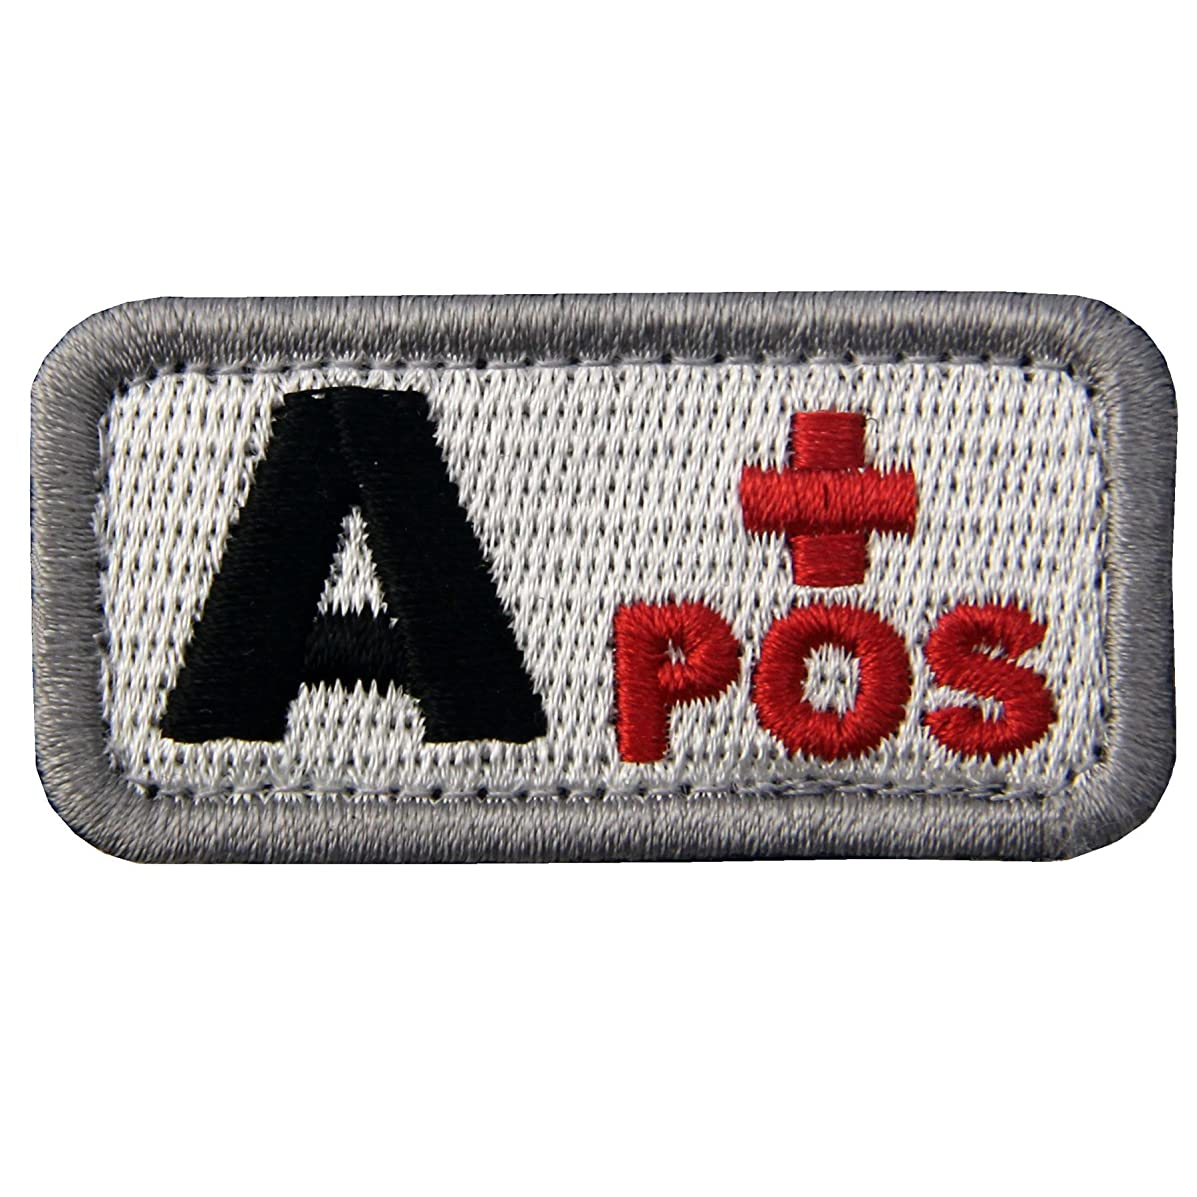 EmbTao Type A Positive Tactical Blood Type Fastener Hook&Loop Patch - Black & Red - 2